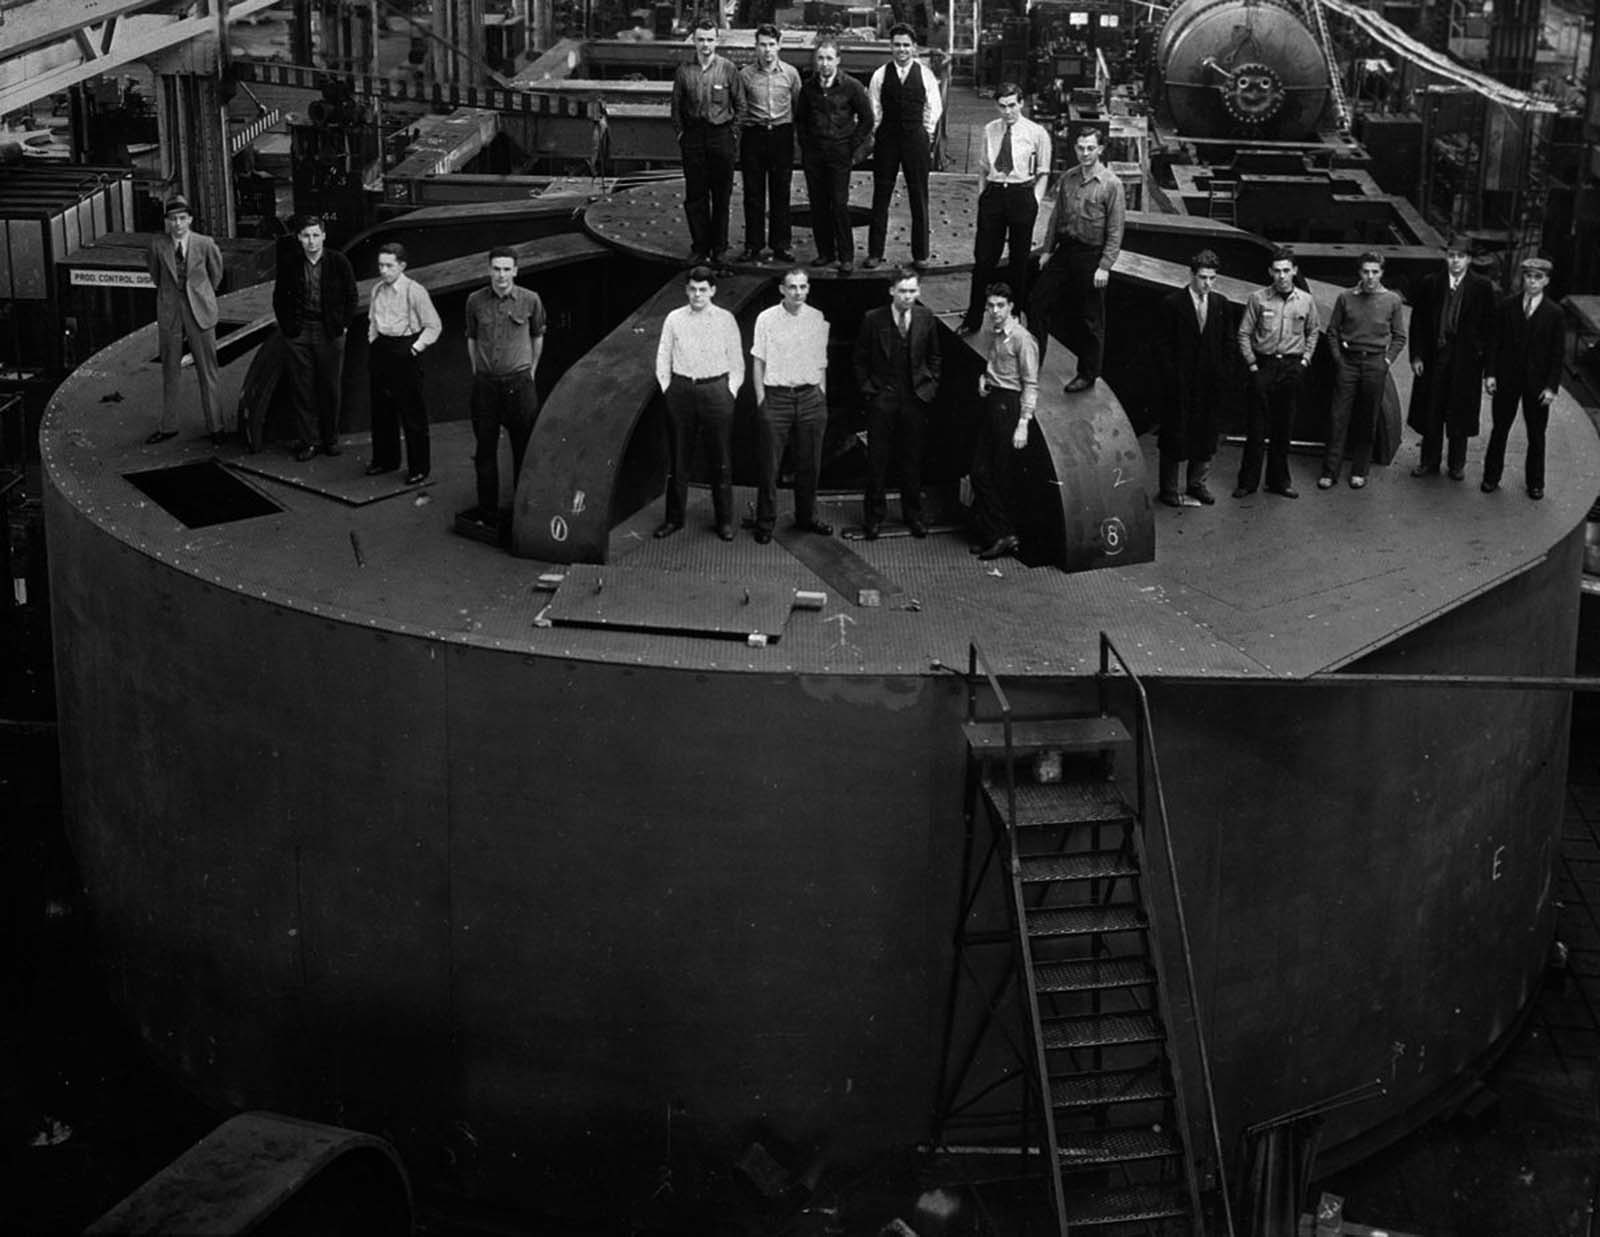 Student engineers stand atop one of the 2 million-pound hydroelectric generators for the dam at the General Electric factory in Schenectady, New York. 1935.